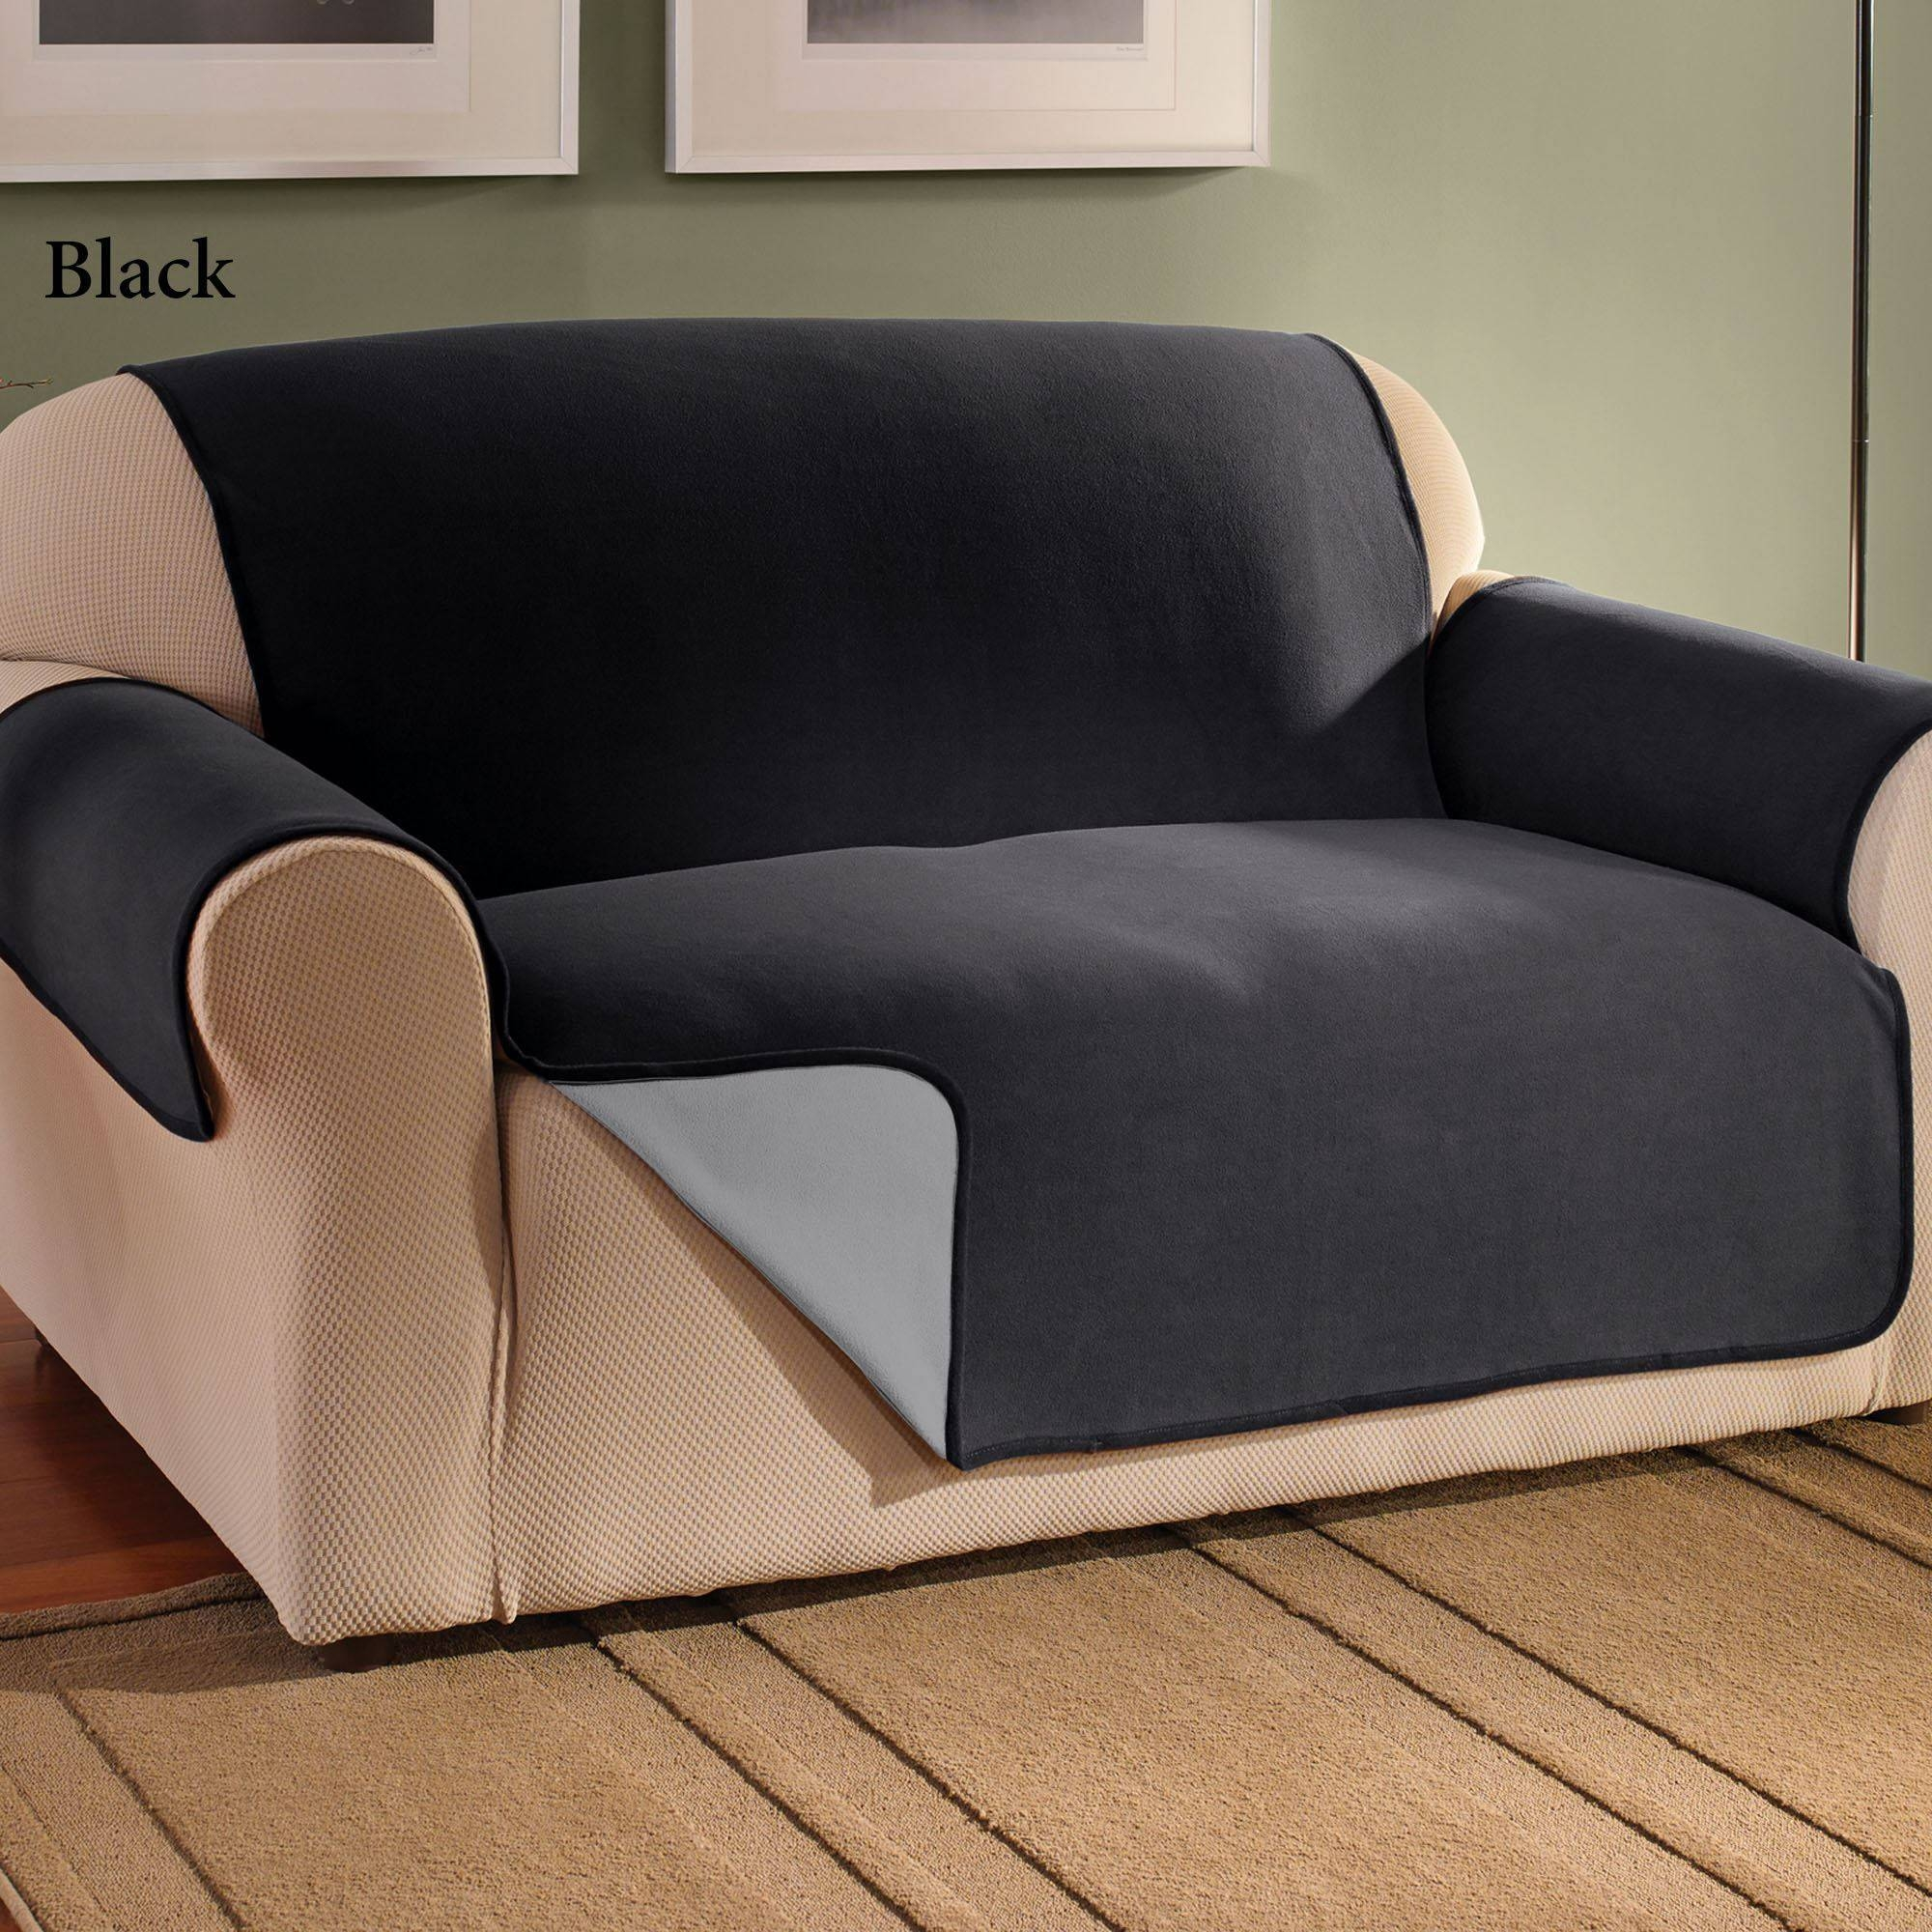 Fleece Reversible Pet Furniture Sofa Covers inside Slipcover For Leather Sofas (Image 6 of 30)